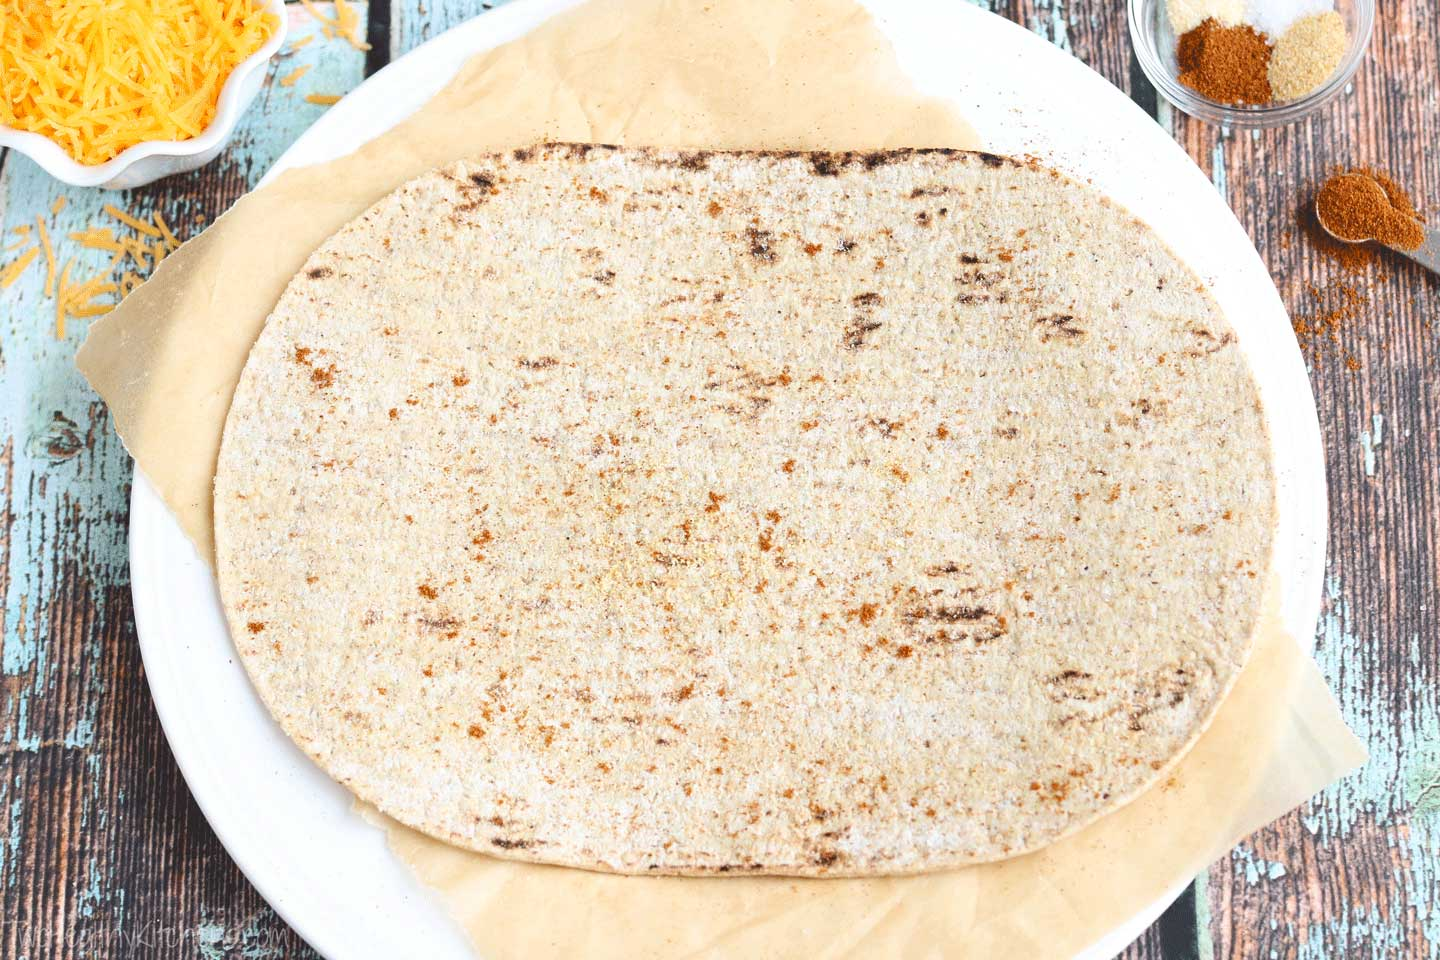 To make each DIY Tacone, start by sprinkling each flatbread with Mexican spices.